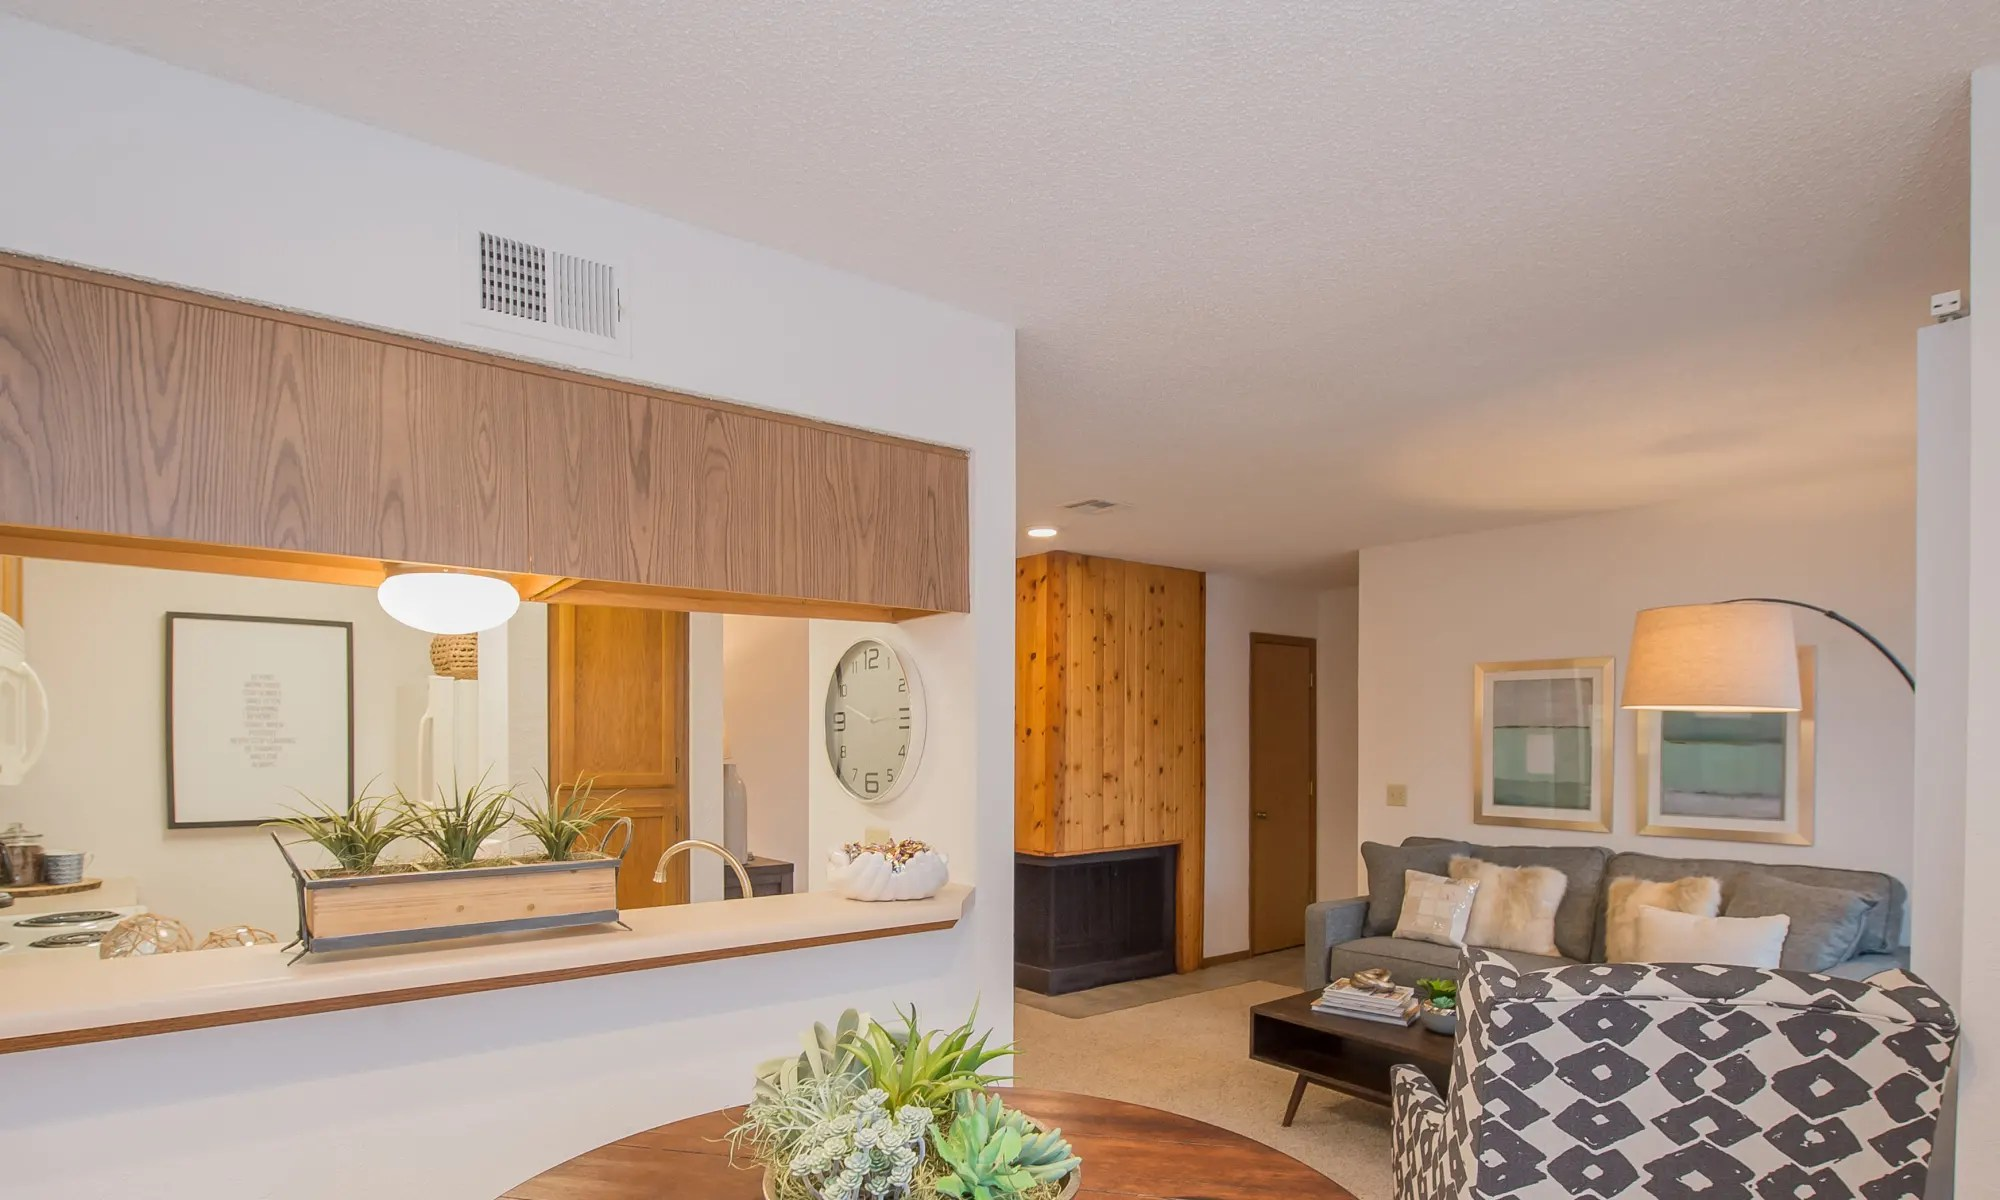 living room friendly pc case nice small photos oklahoma city apartments townhomes warrington enjoy life in our quaint community